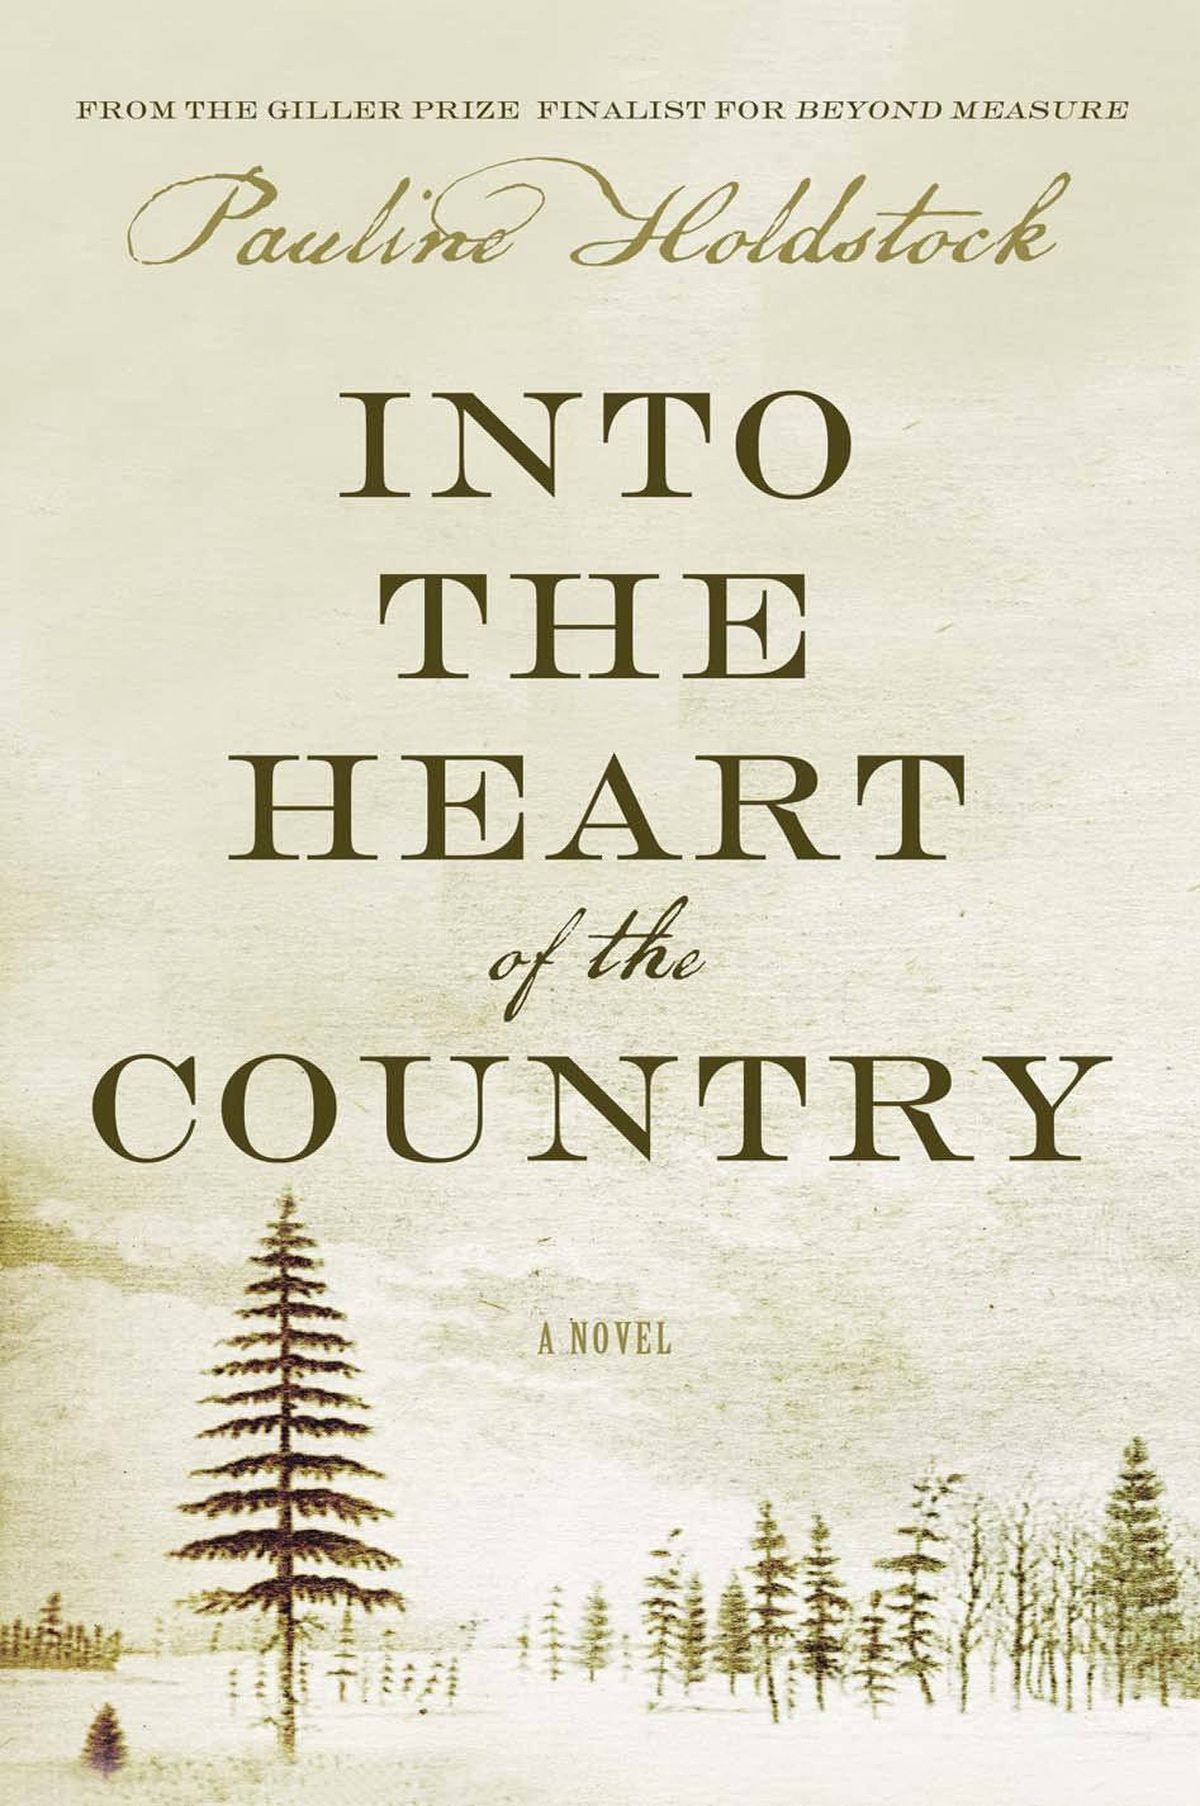 INTO THE HEART OF THE COUNTRY By Pauline Holdstock (HarperCollins) Holdstock takes on the relationship between English fur traders in Churchill, Man., and the native women on whom they relied. The novel follows the real-life, 18th-century exploits of Richard Norton, his son, Moses, and explorer Samuel Hearne, interspersing the goings-on at the Prince of Wales Fort with the dream sequences of Molly Norton, Hearne's fictional love interest. – Suzanne Desrochers